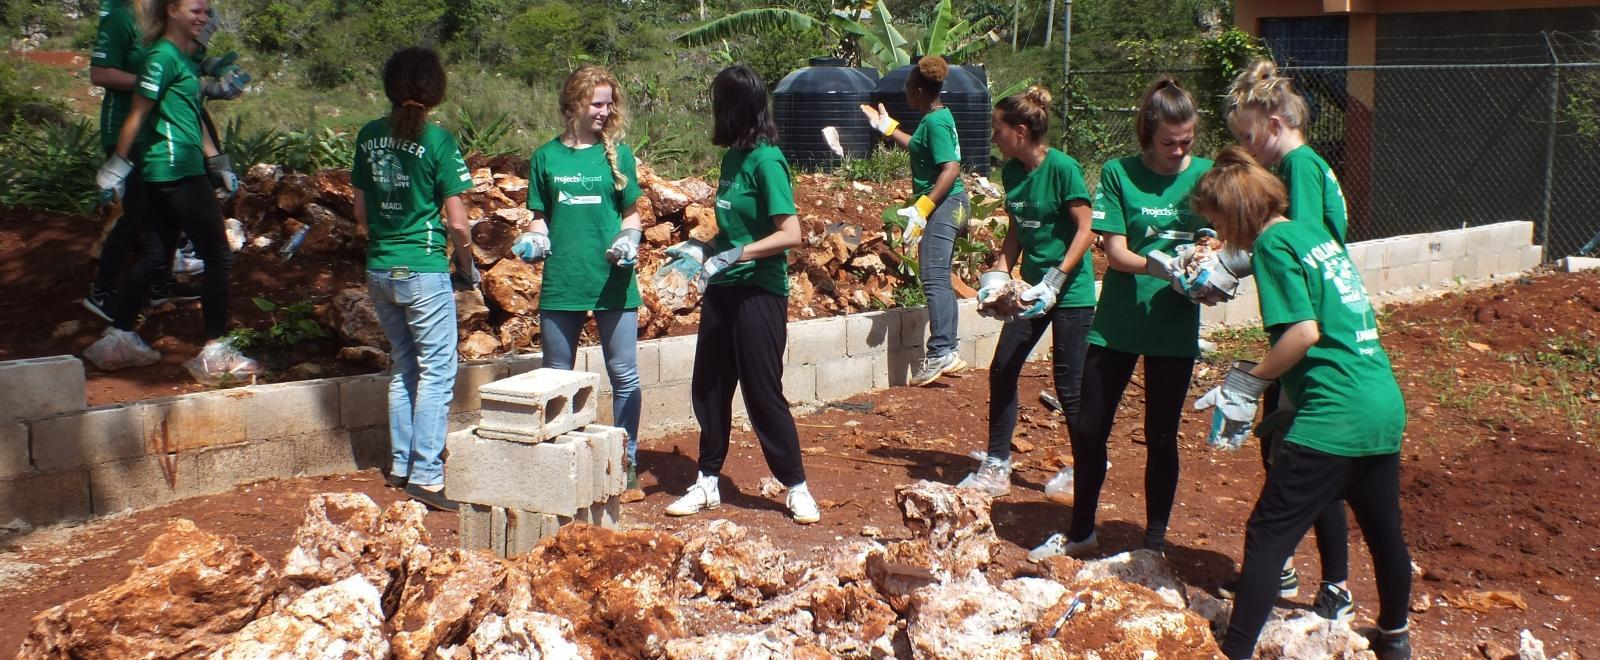 A group of people clear ground for a new playground at a disadvantaged school during their short-term volunteer abroad trip to Jamaica.